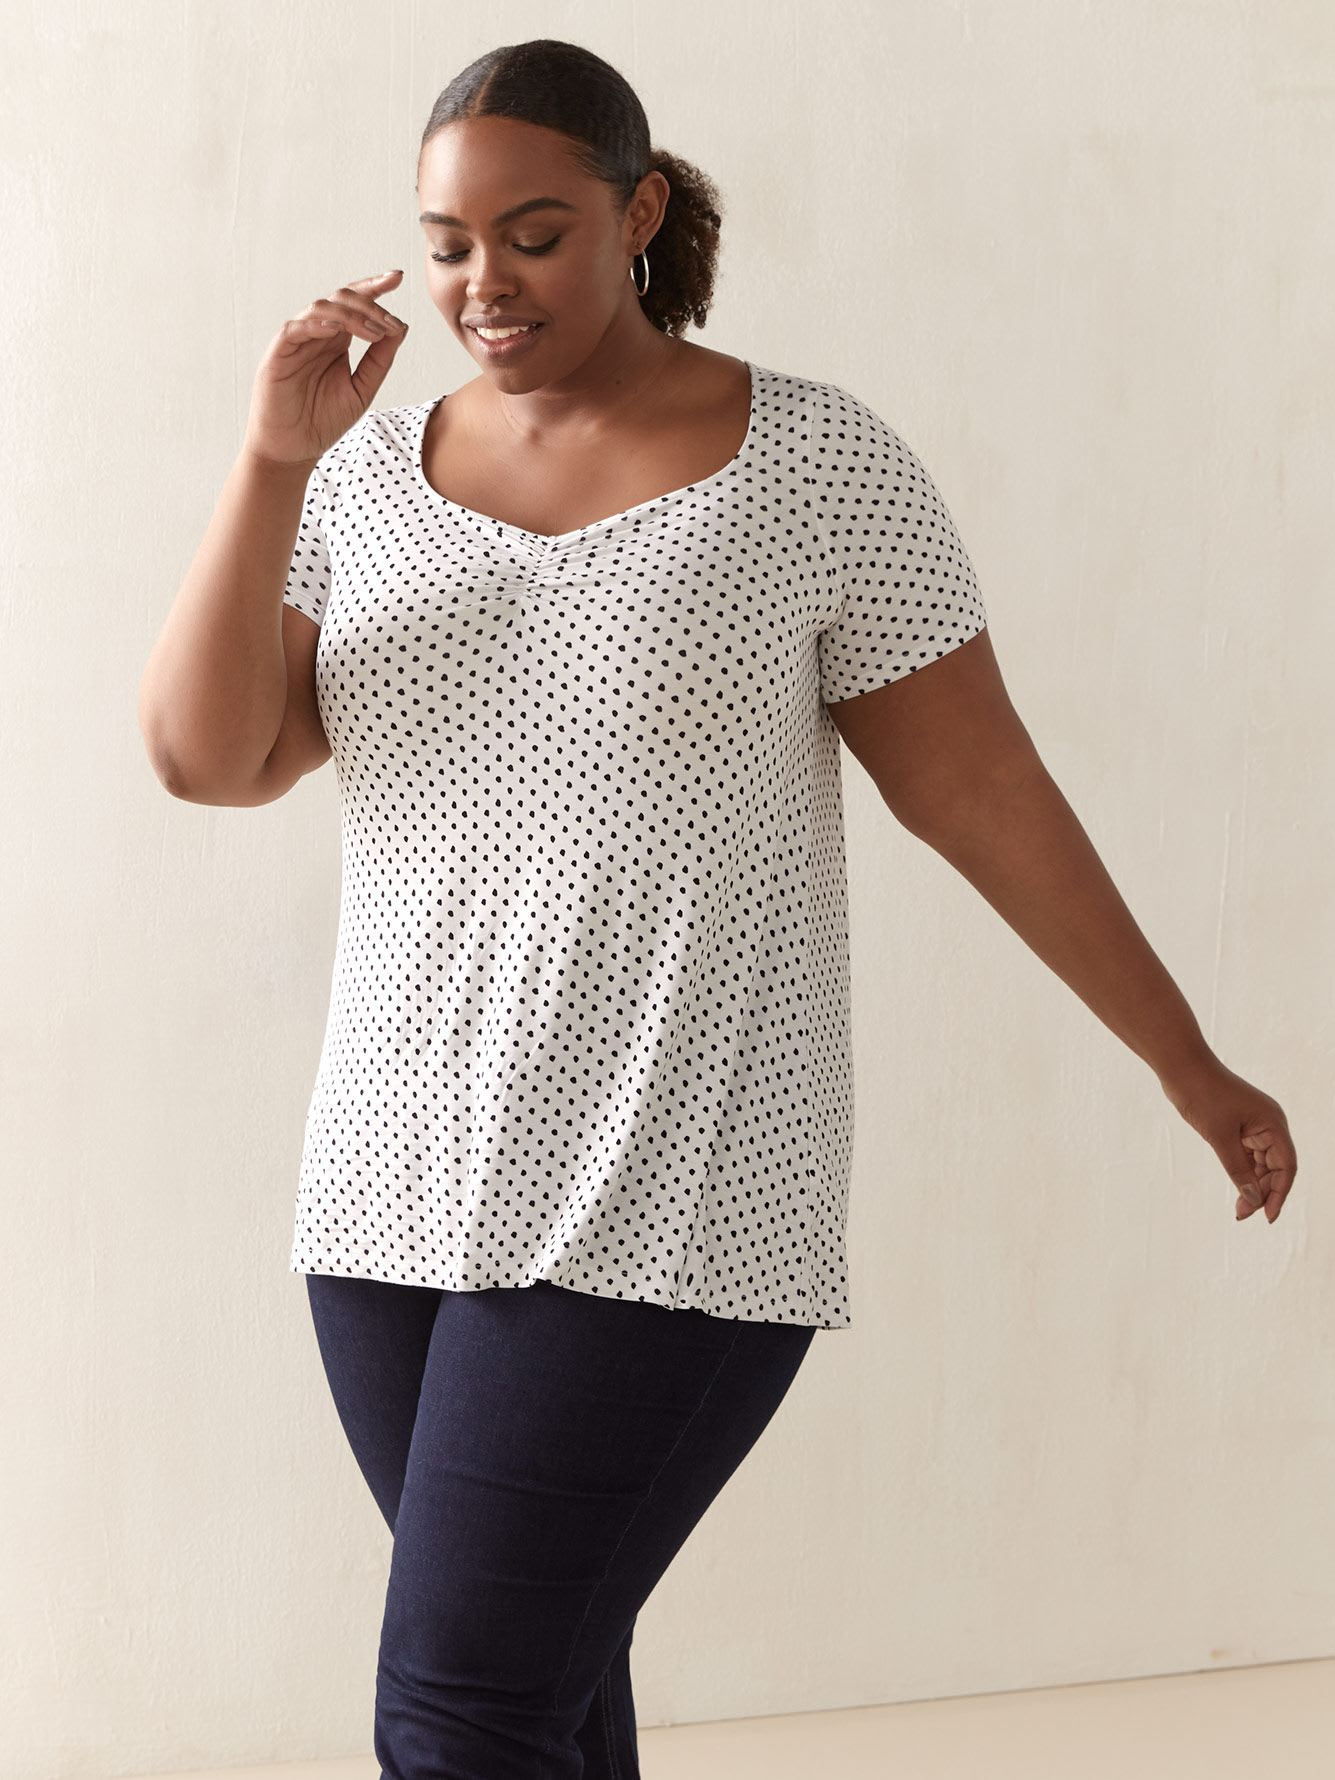 Sweetheart Short-Sleeve Top - In Every Story